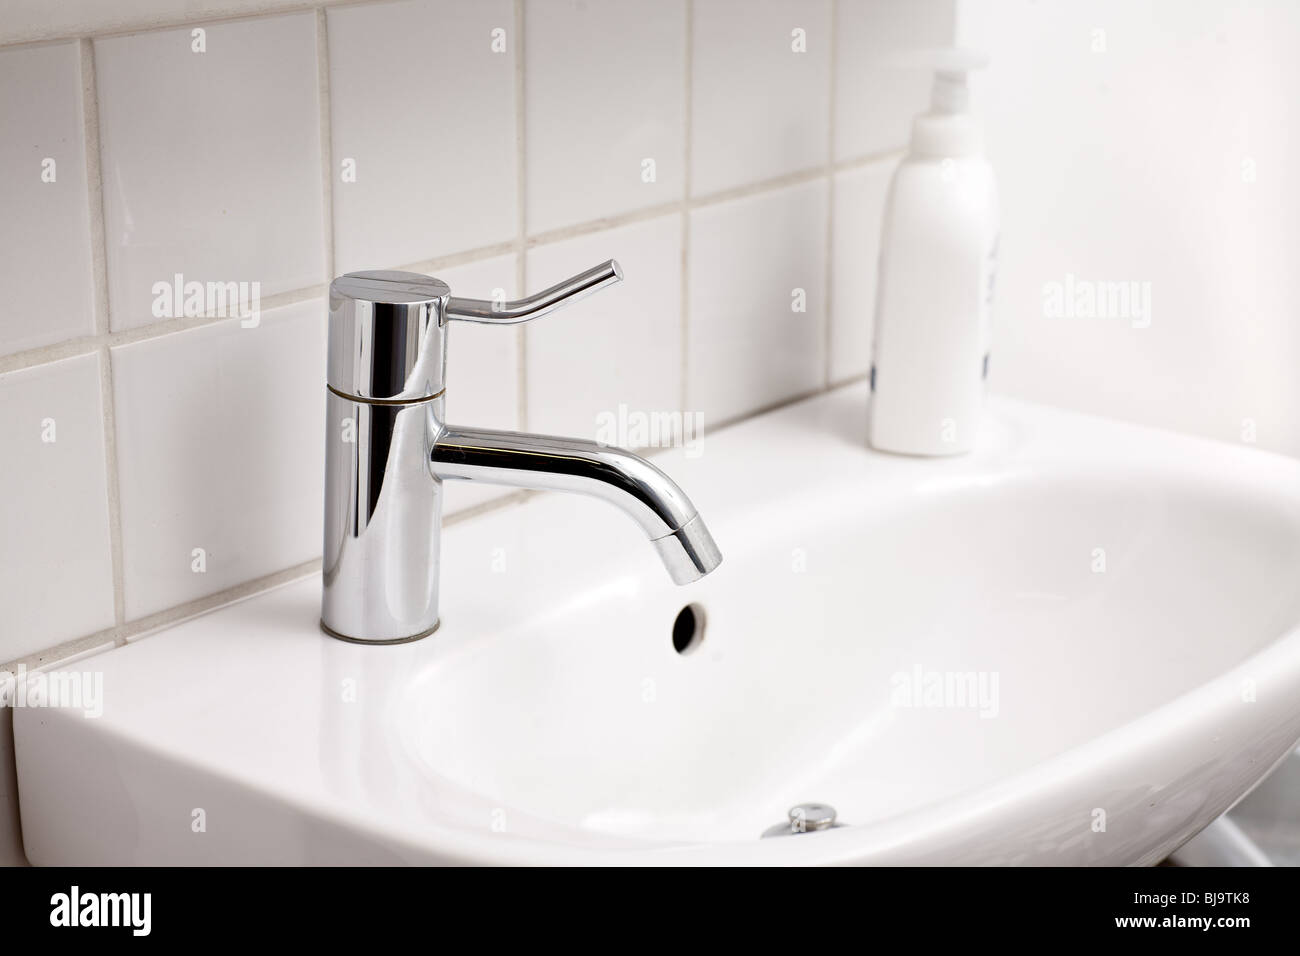 Close up of sink and tap in bathroom - Stock Image